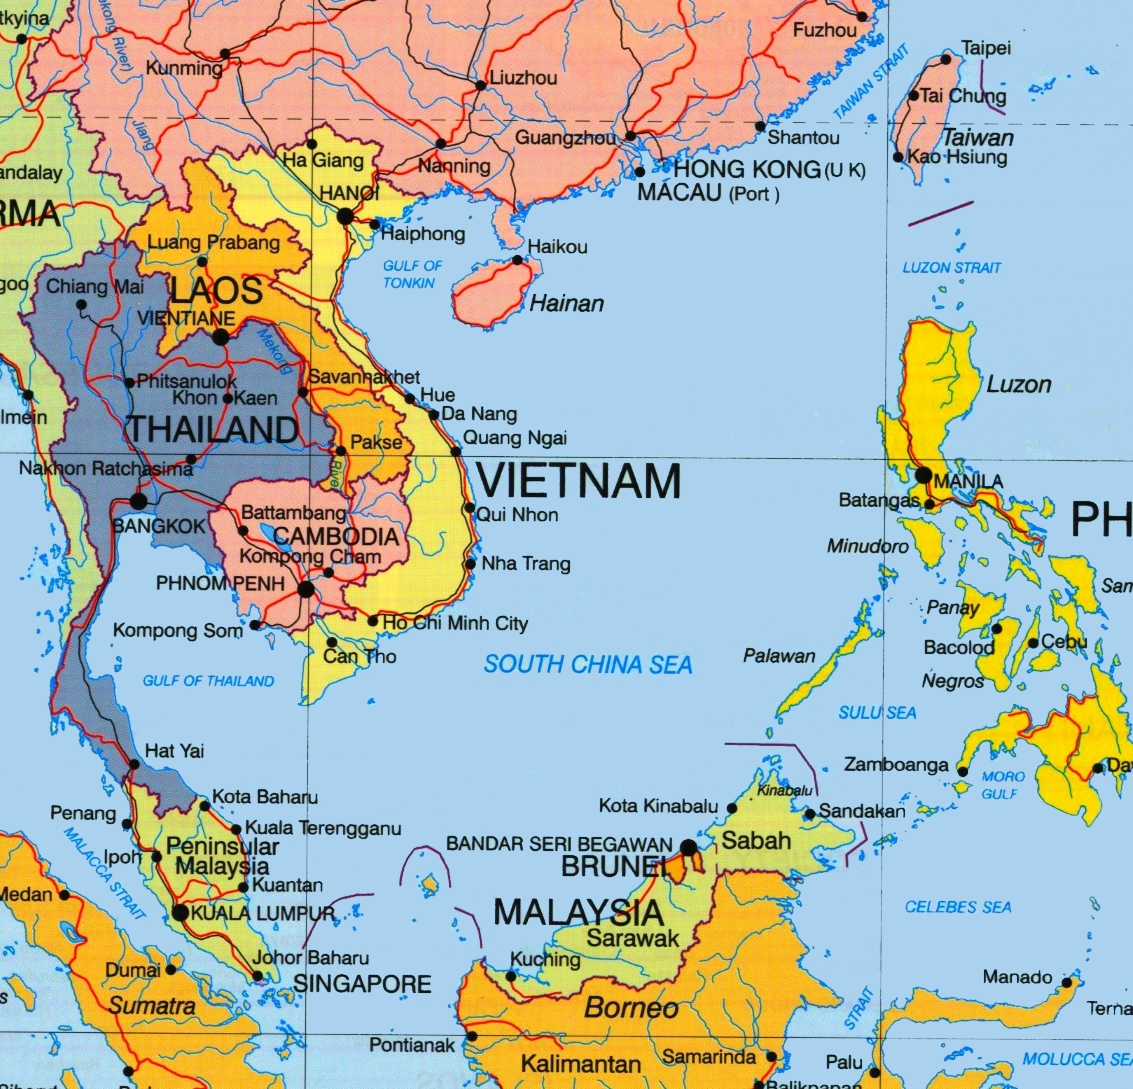 China Sea Map South China Sea political map